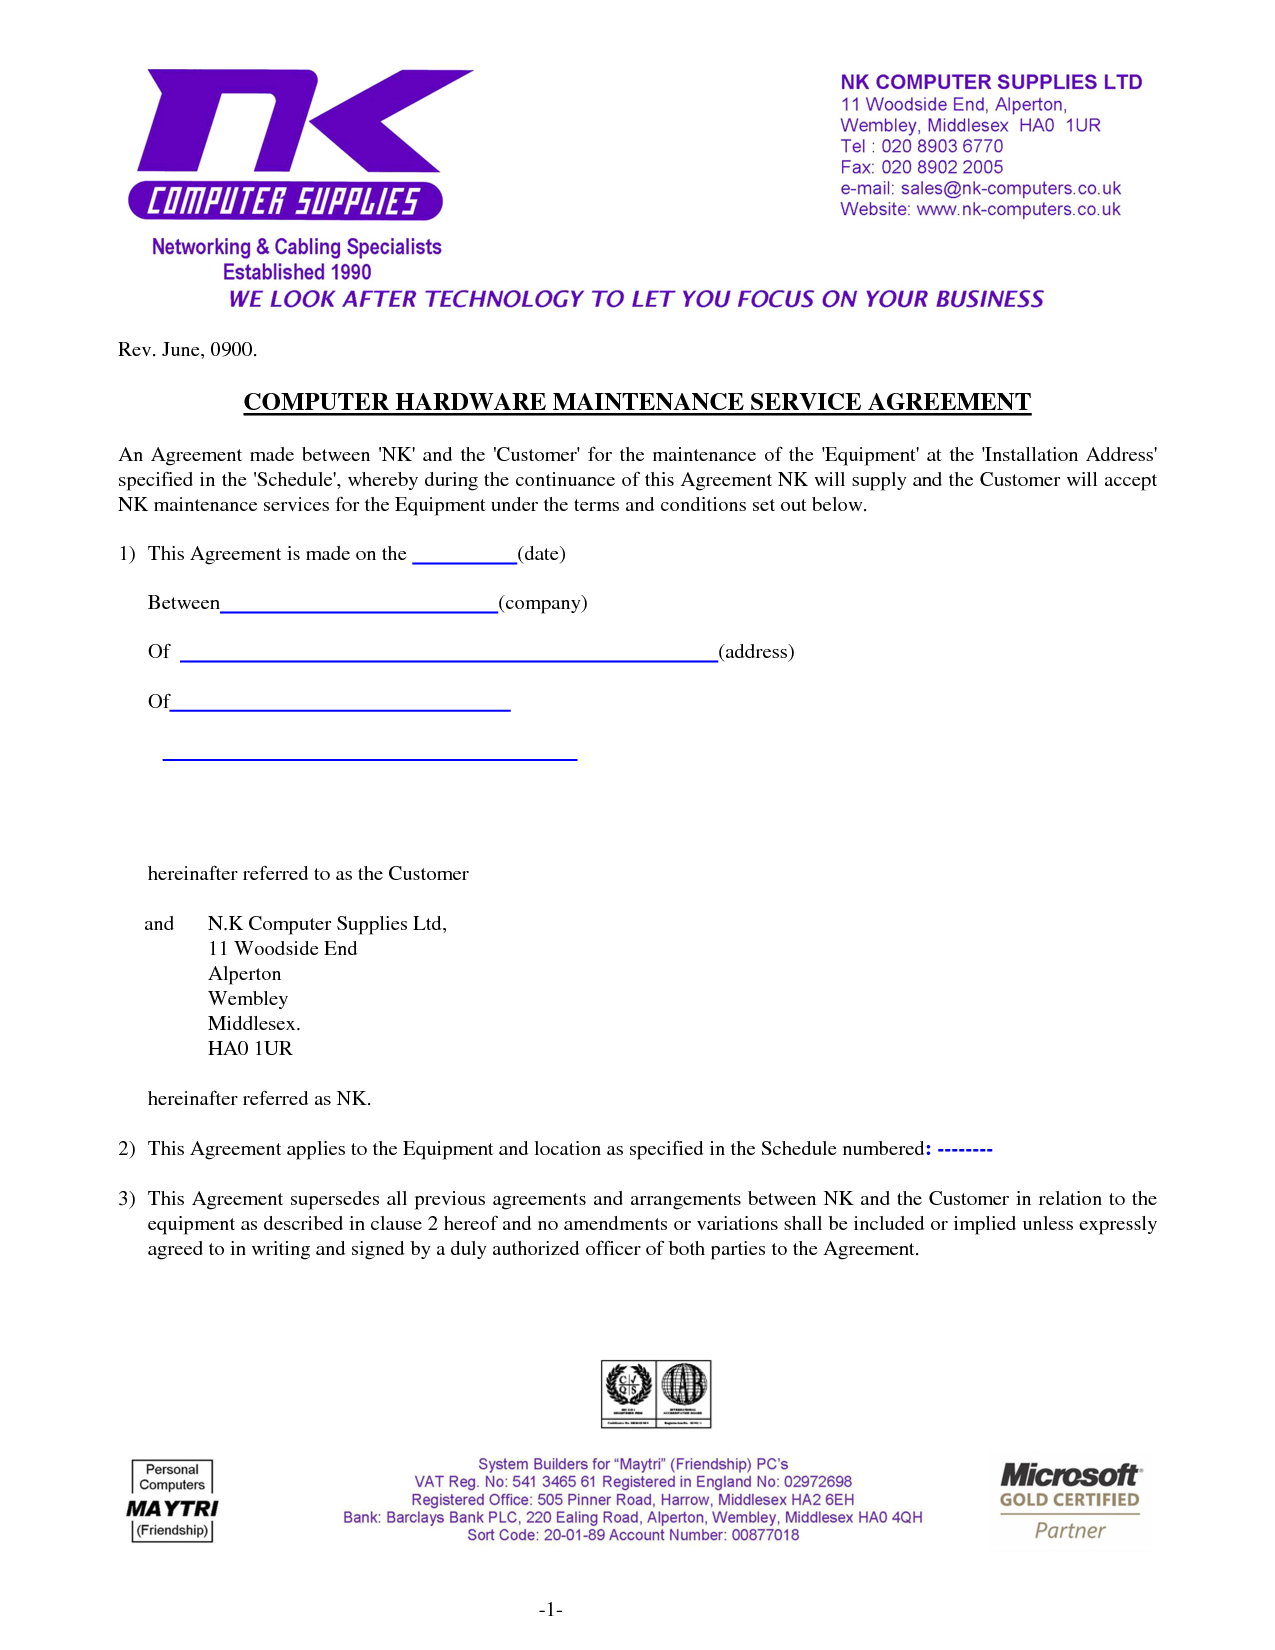 Computer Support Computer Support Agreement Sample  Software